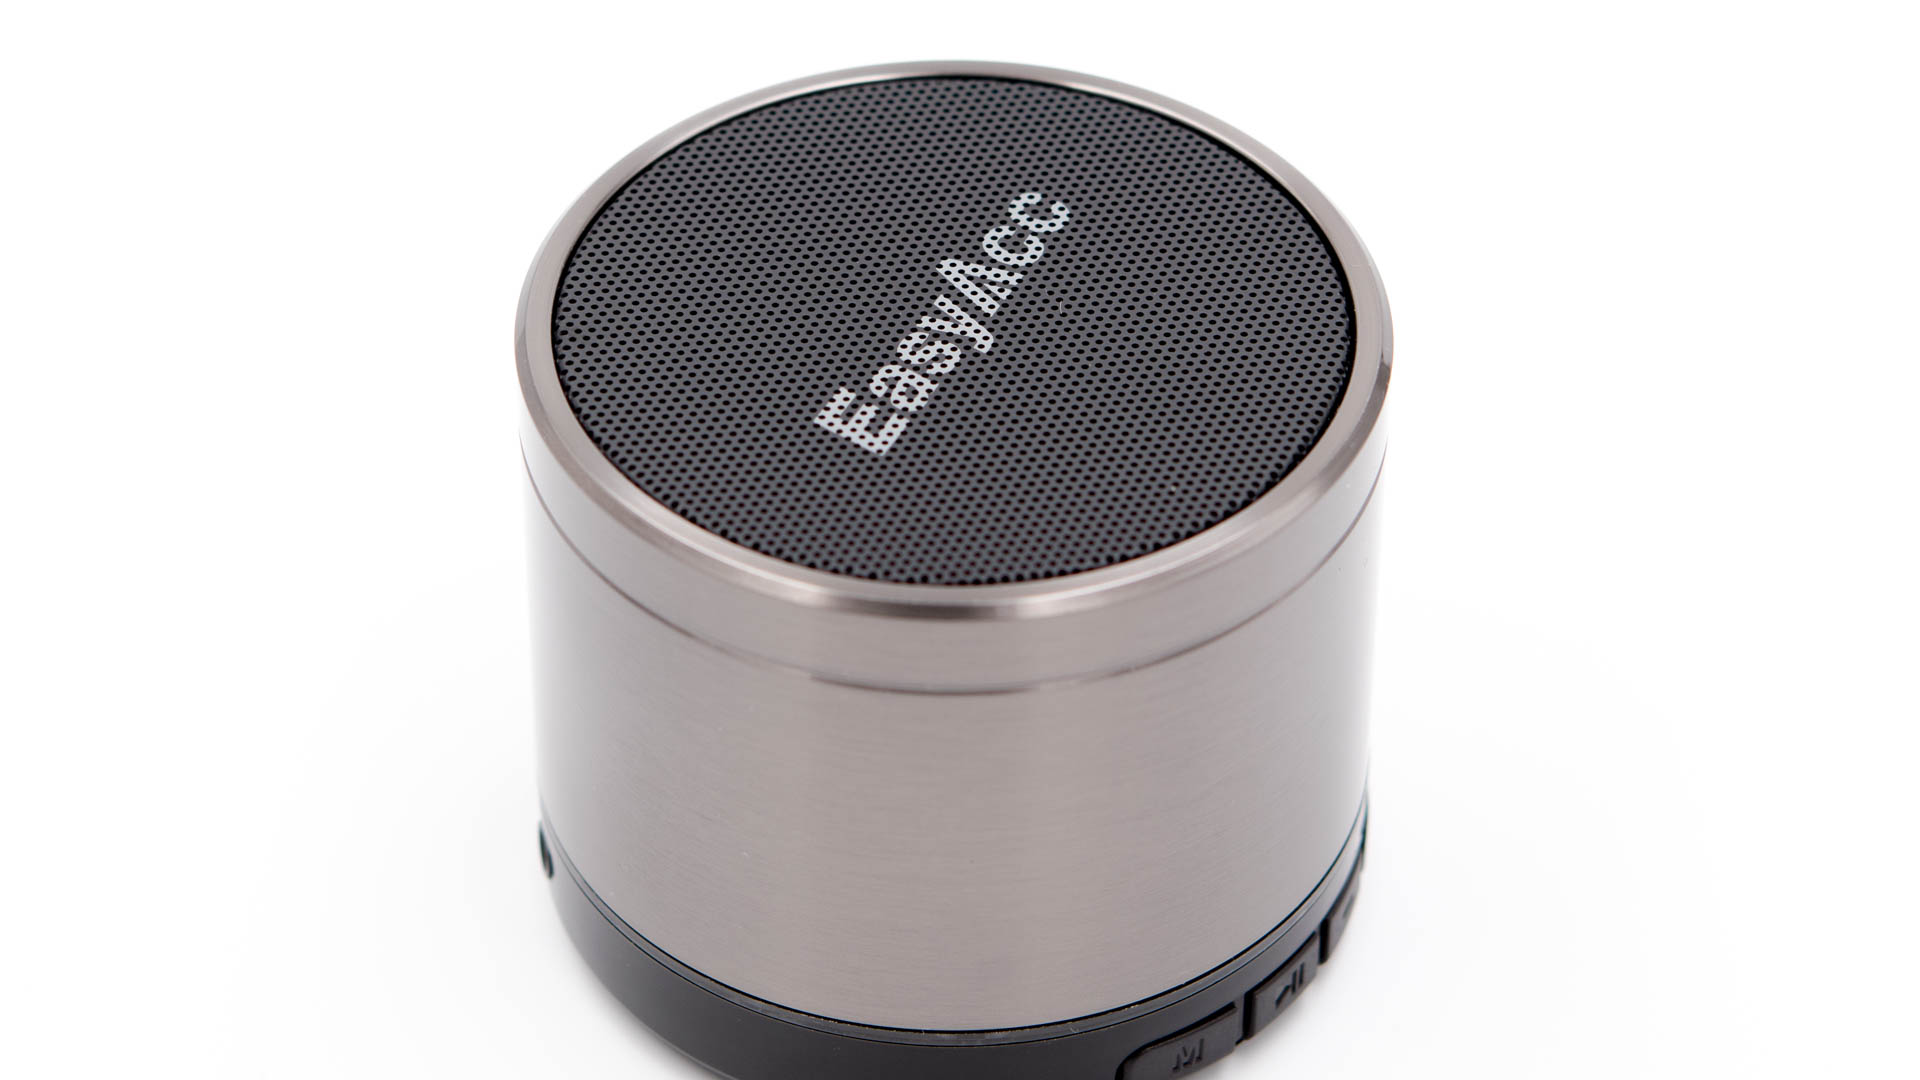 der easyacc mini 2 bluetooth lautsprecher im test mine bluetooth lautsprecher mit fm radio und. Black Bedroom Furniture Sets. Home Design Ideas